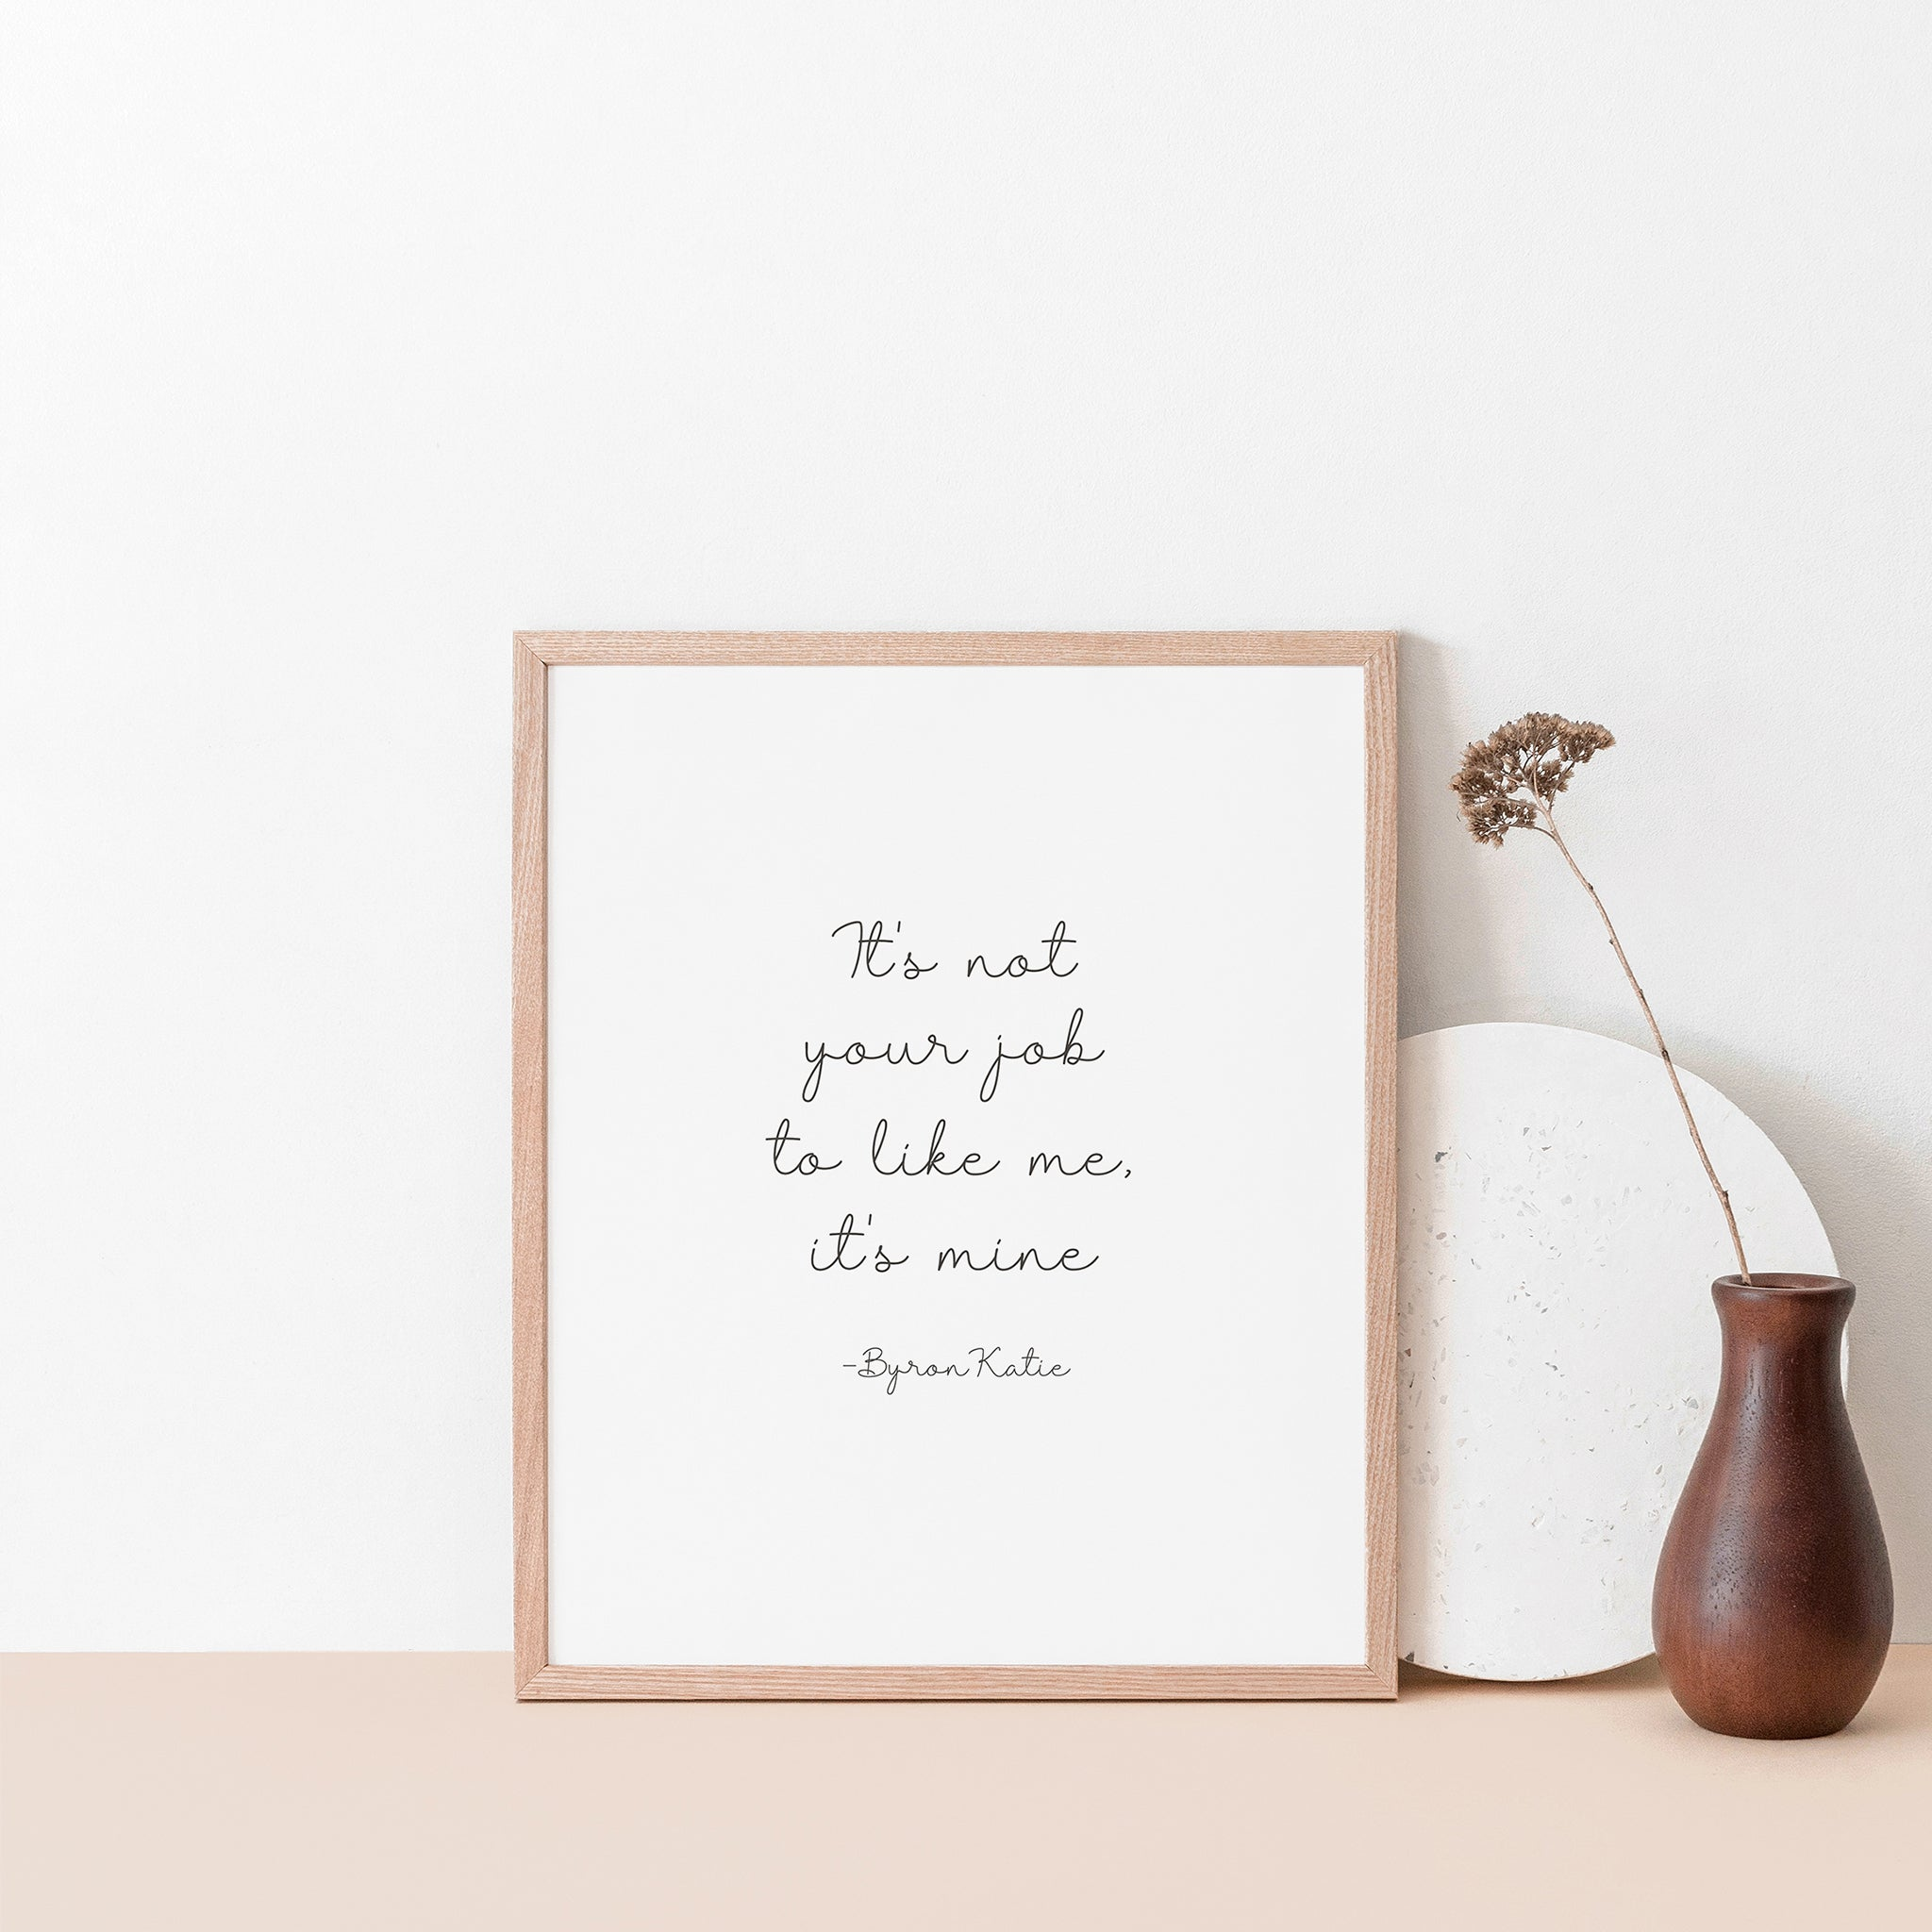 It's not your job to like me, it's mine, Quote wall art poster